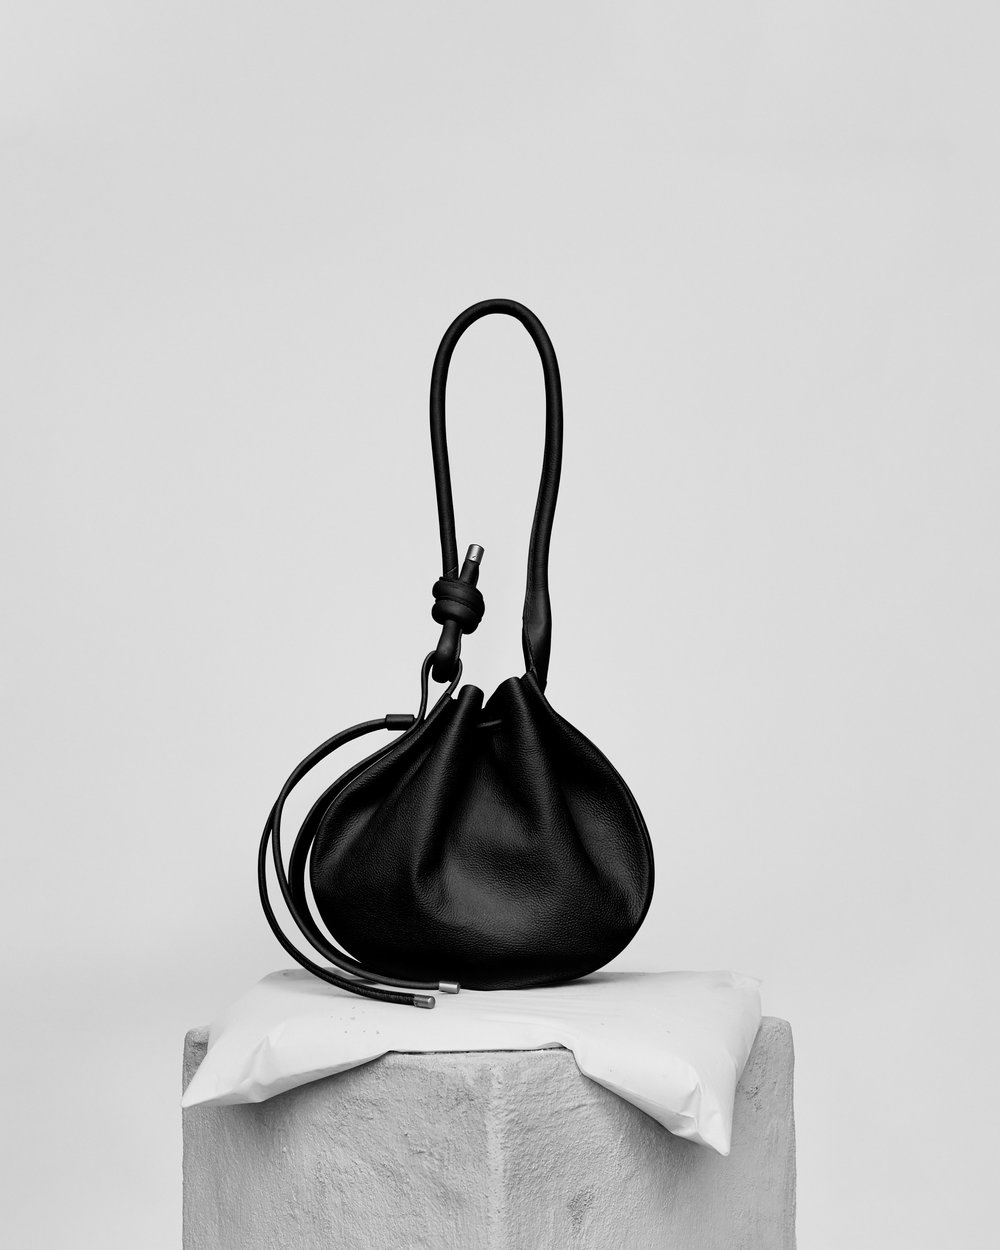 BEHNO, US/India - behno is a NYC-based handbag label whose mission is to redefine and bring sharp awareness to sustainability and ethics to fashion. The brand has implemented its own 'behno Standard' with manufacturing partners in India to revolutionise the way garment workers and artisans are treated, viewed, and employed.